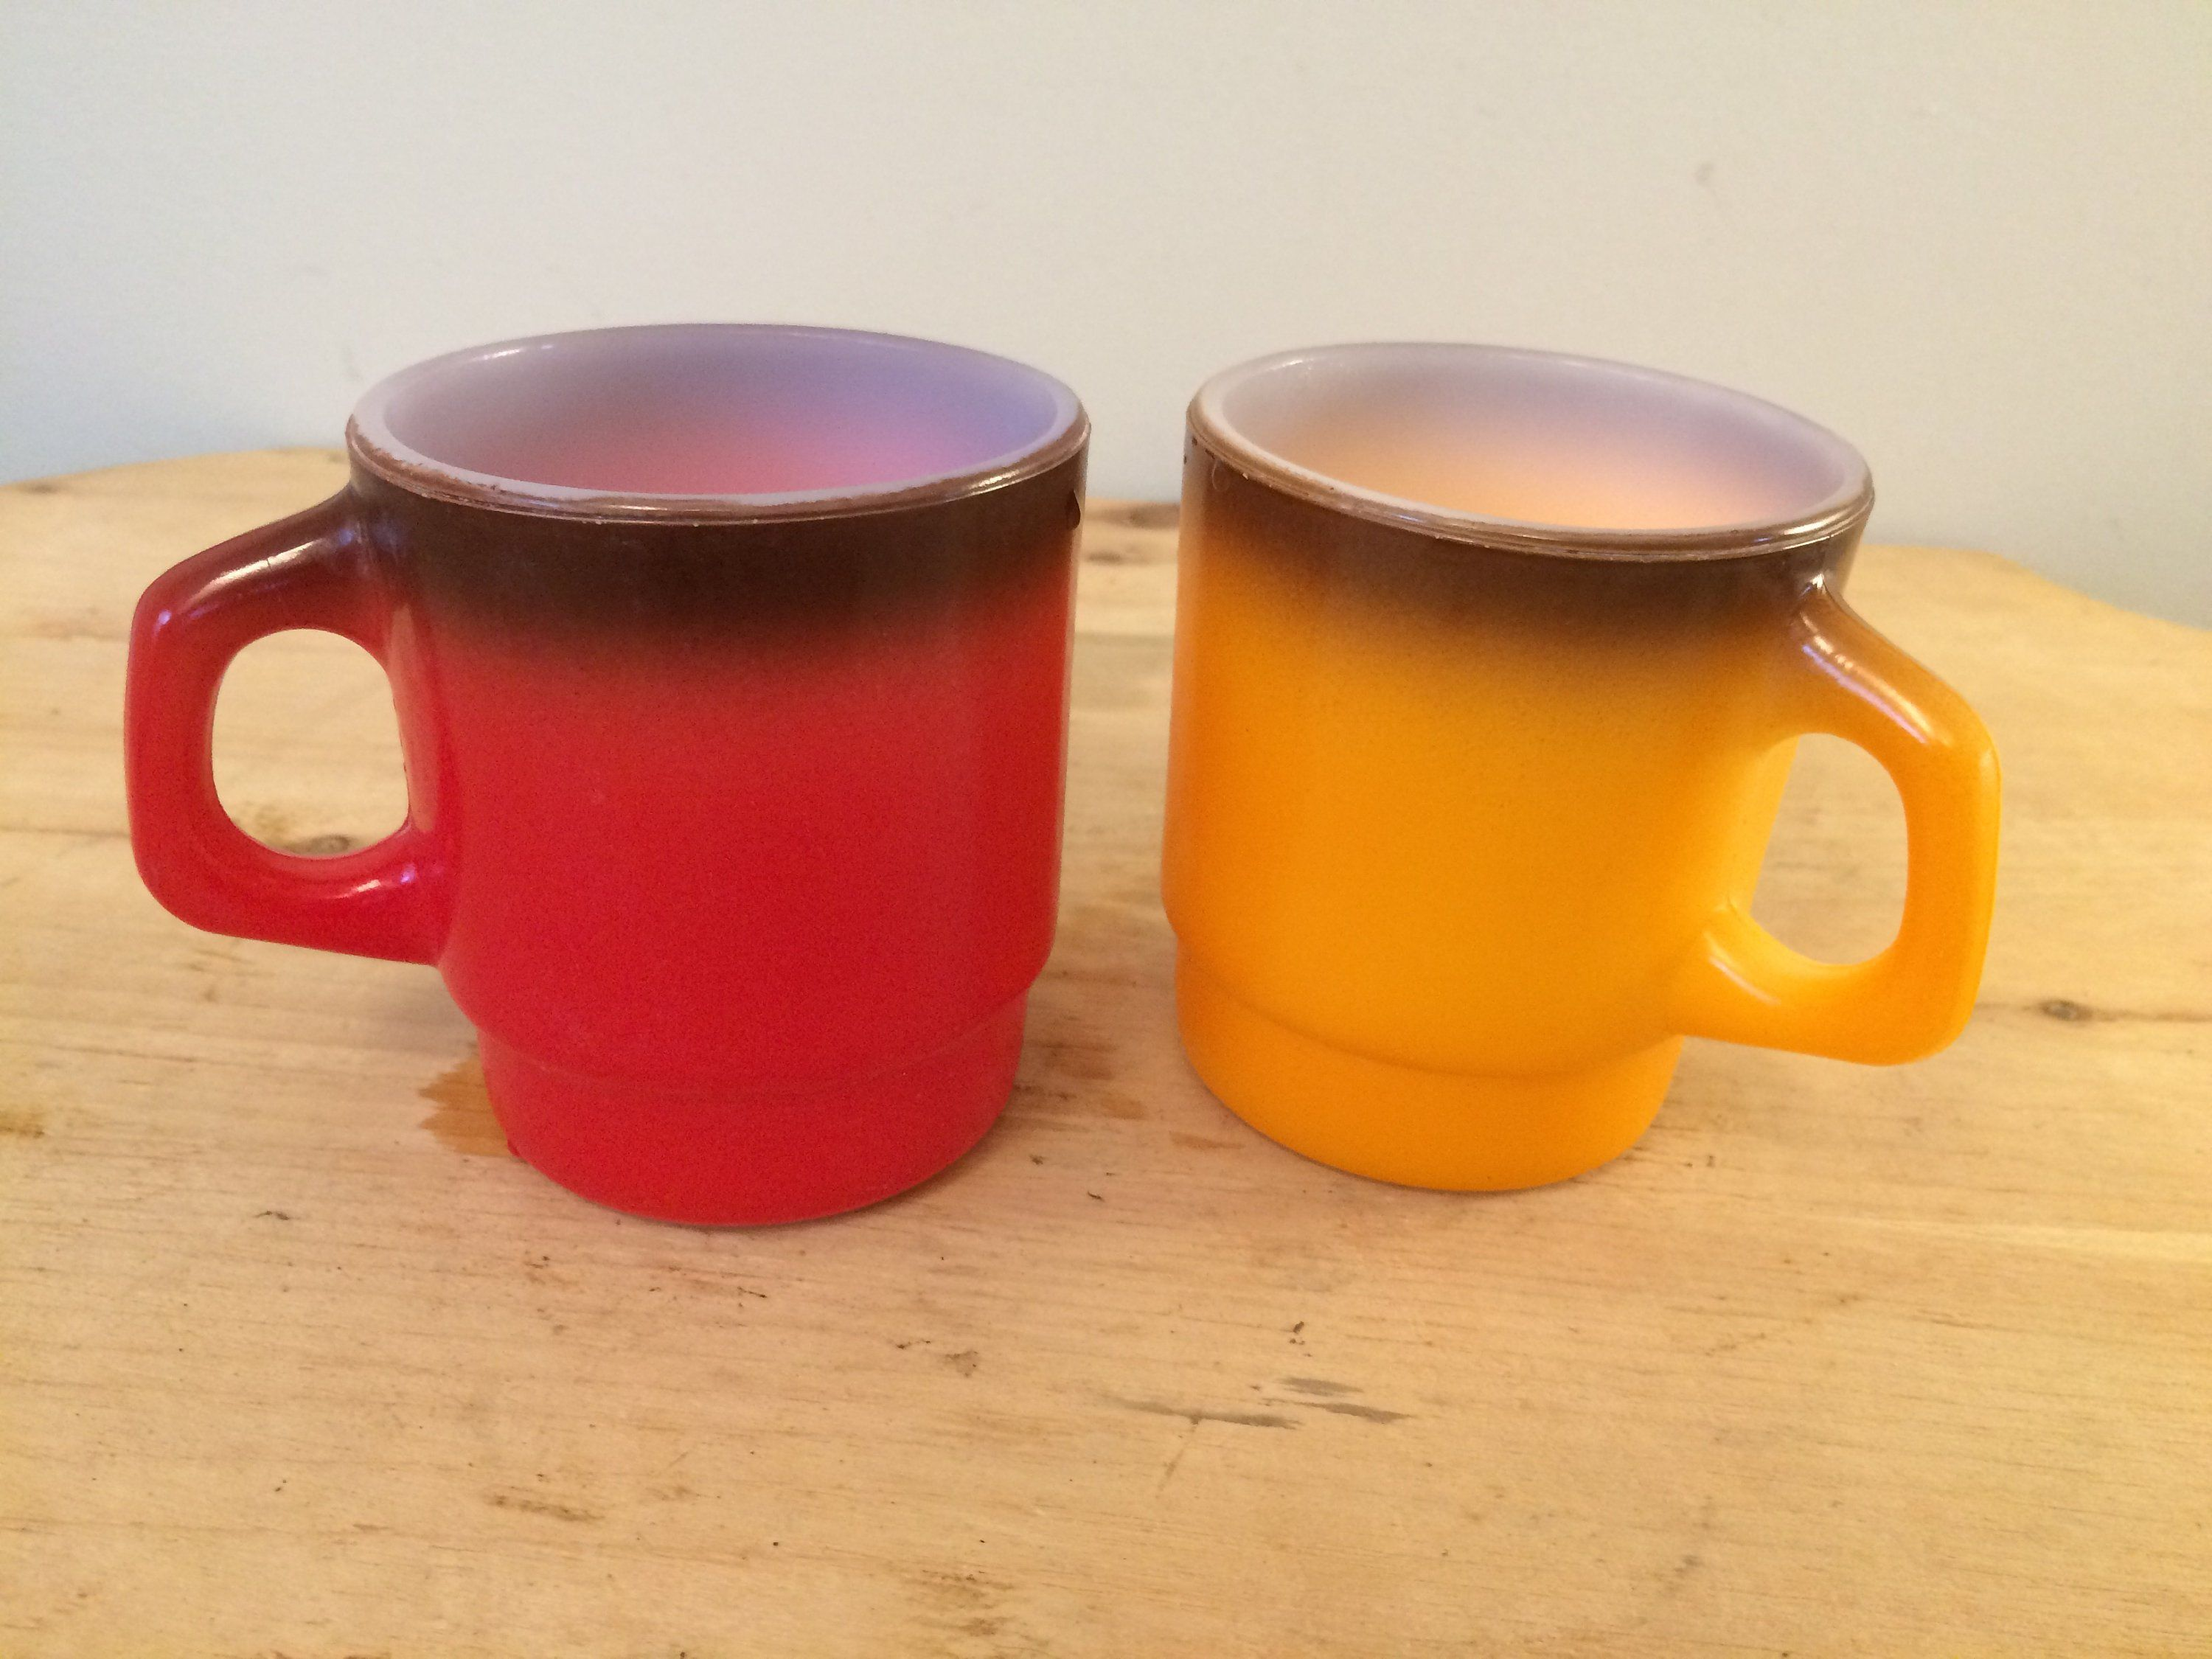 b28c6dc351f Set of two vintage red and yellow Fire King milk glass coffee mug ...